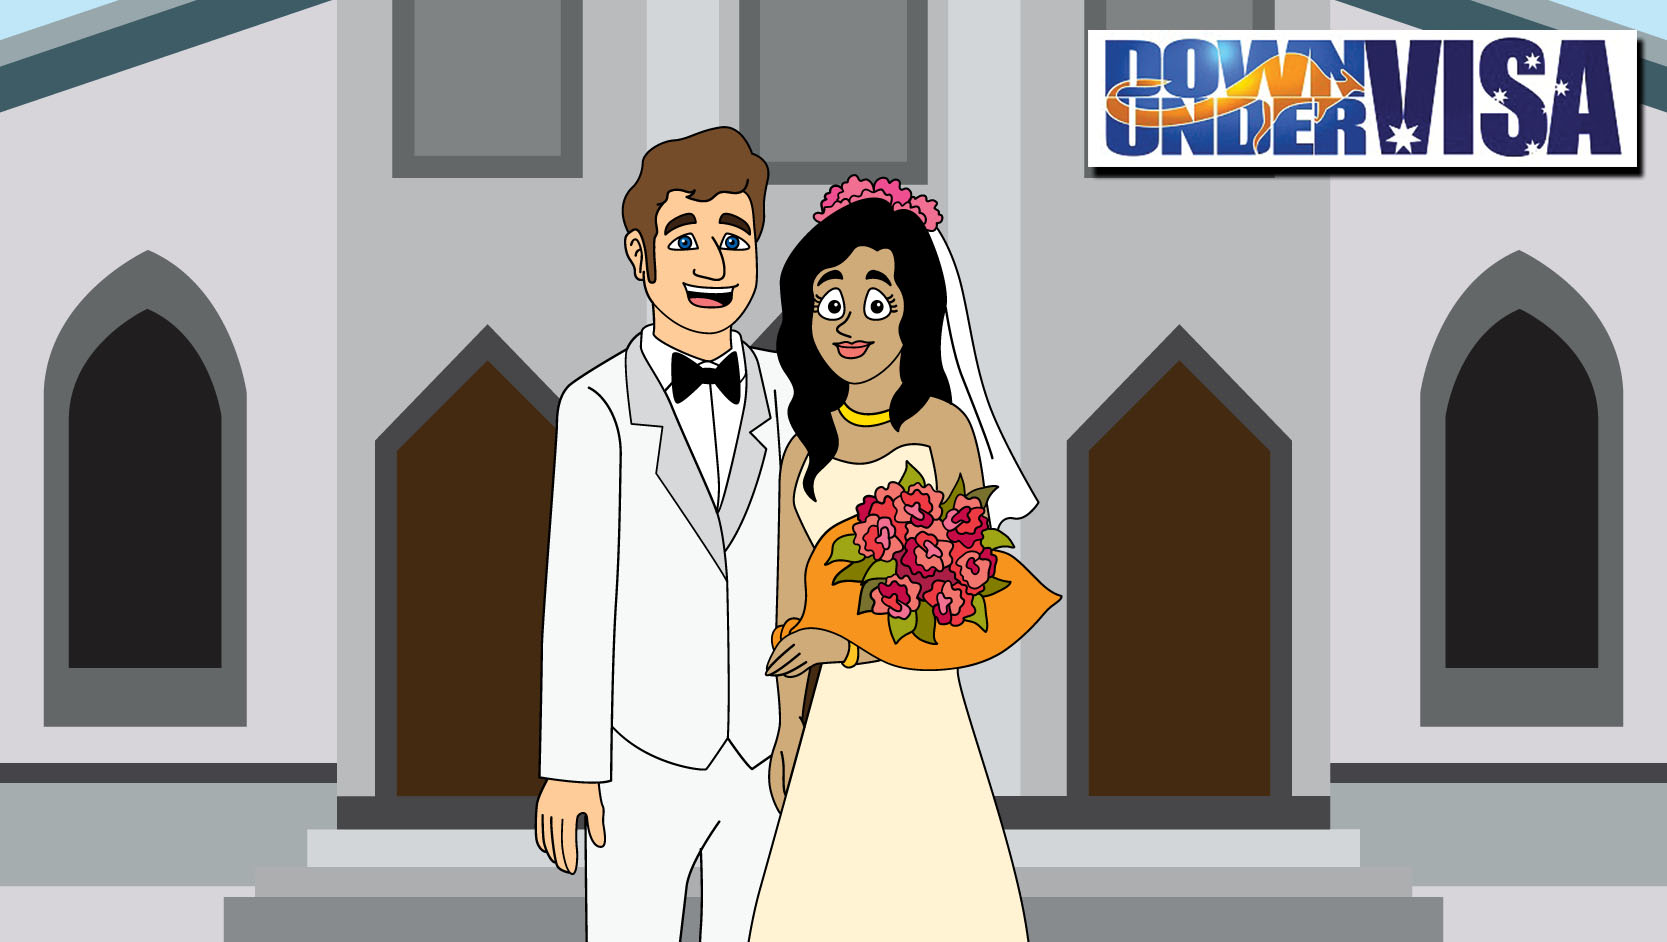 remarrying in philippines, remarriage in the catholic church or civil marriage